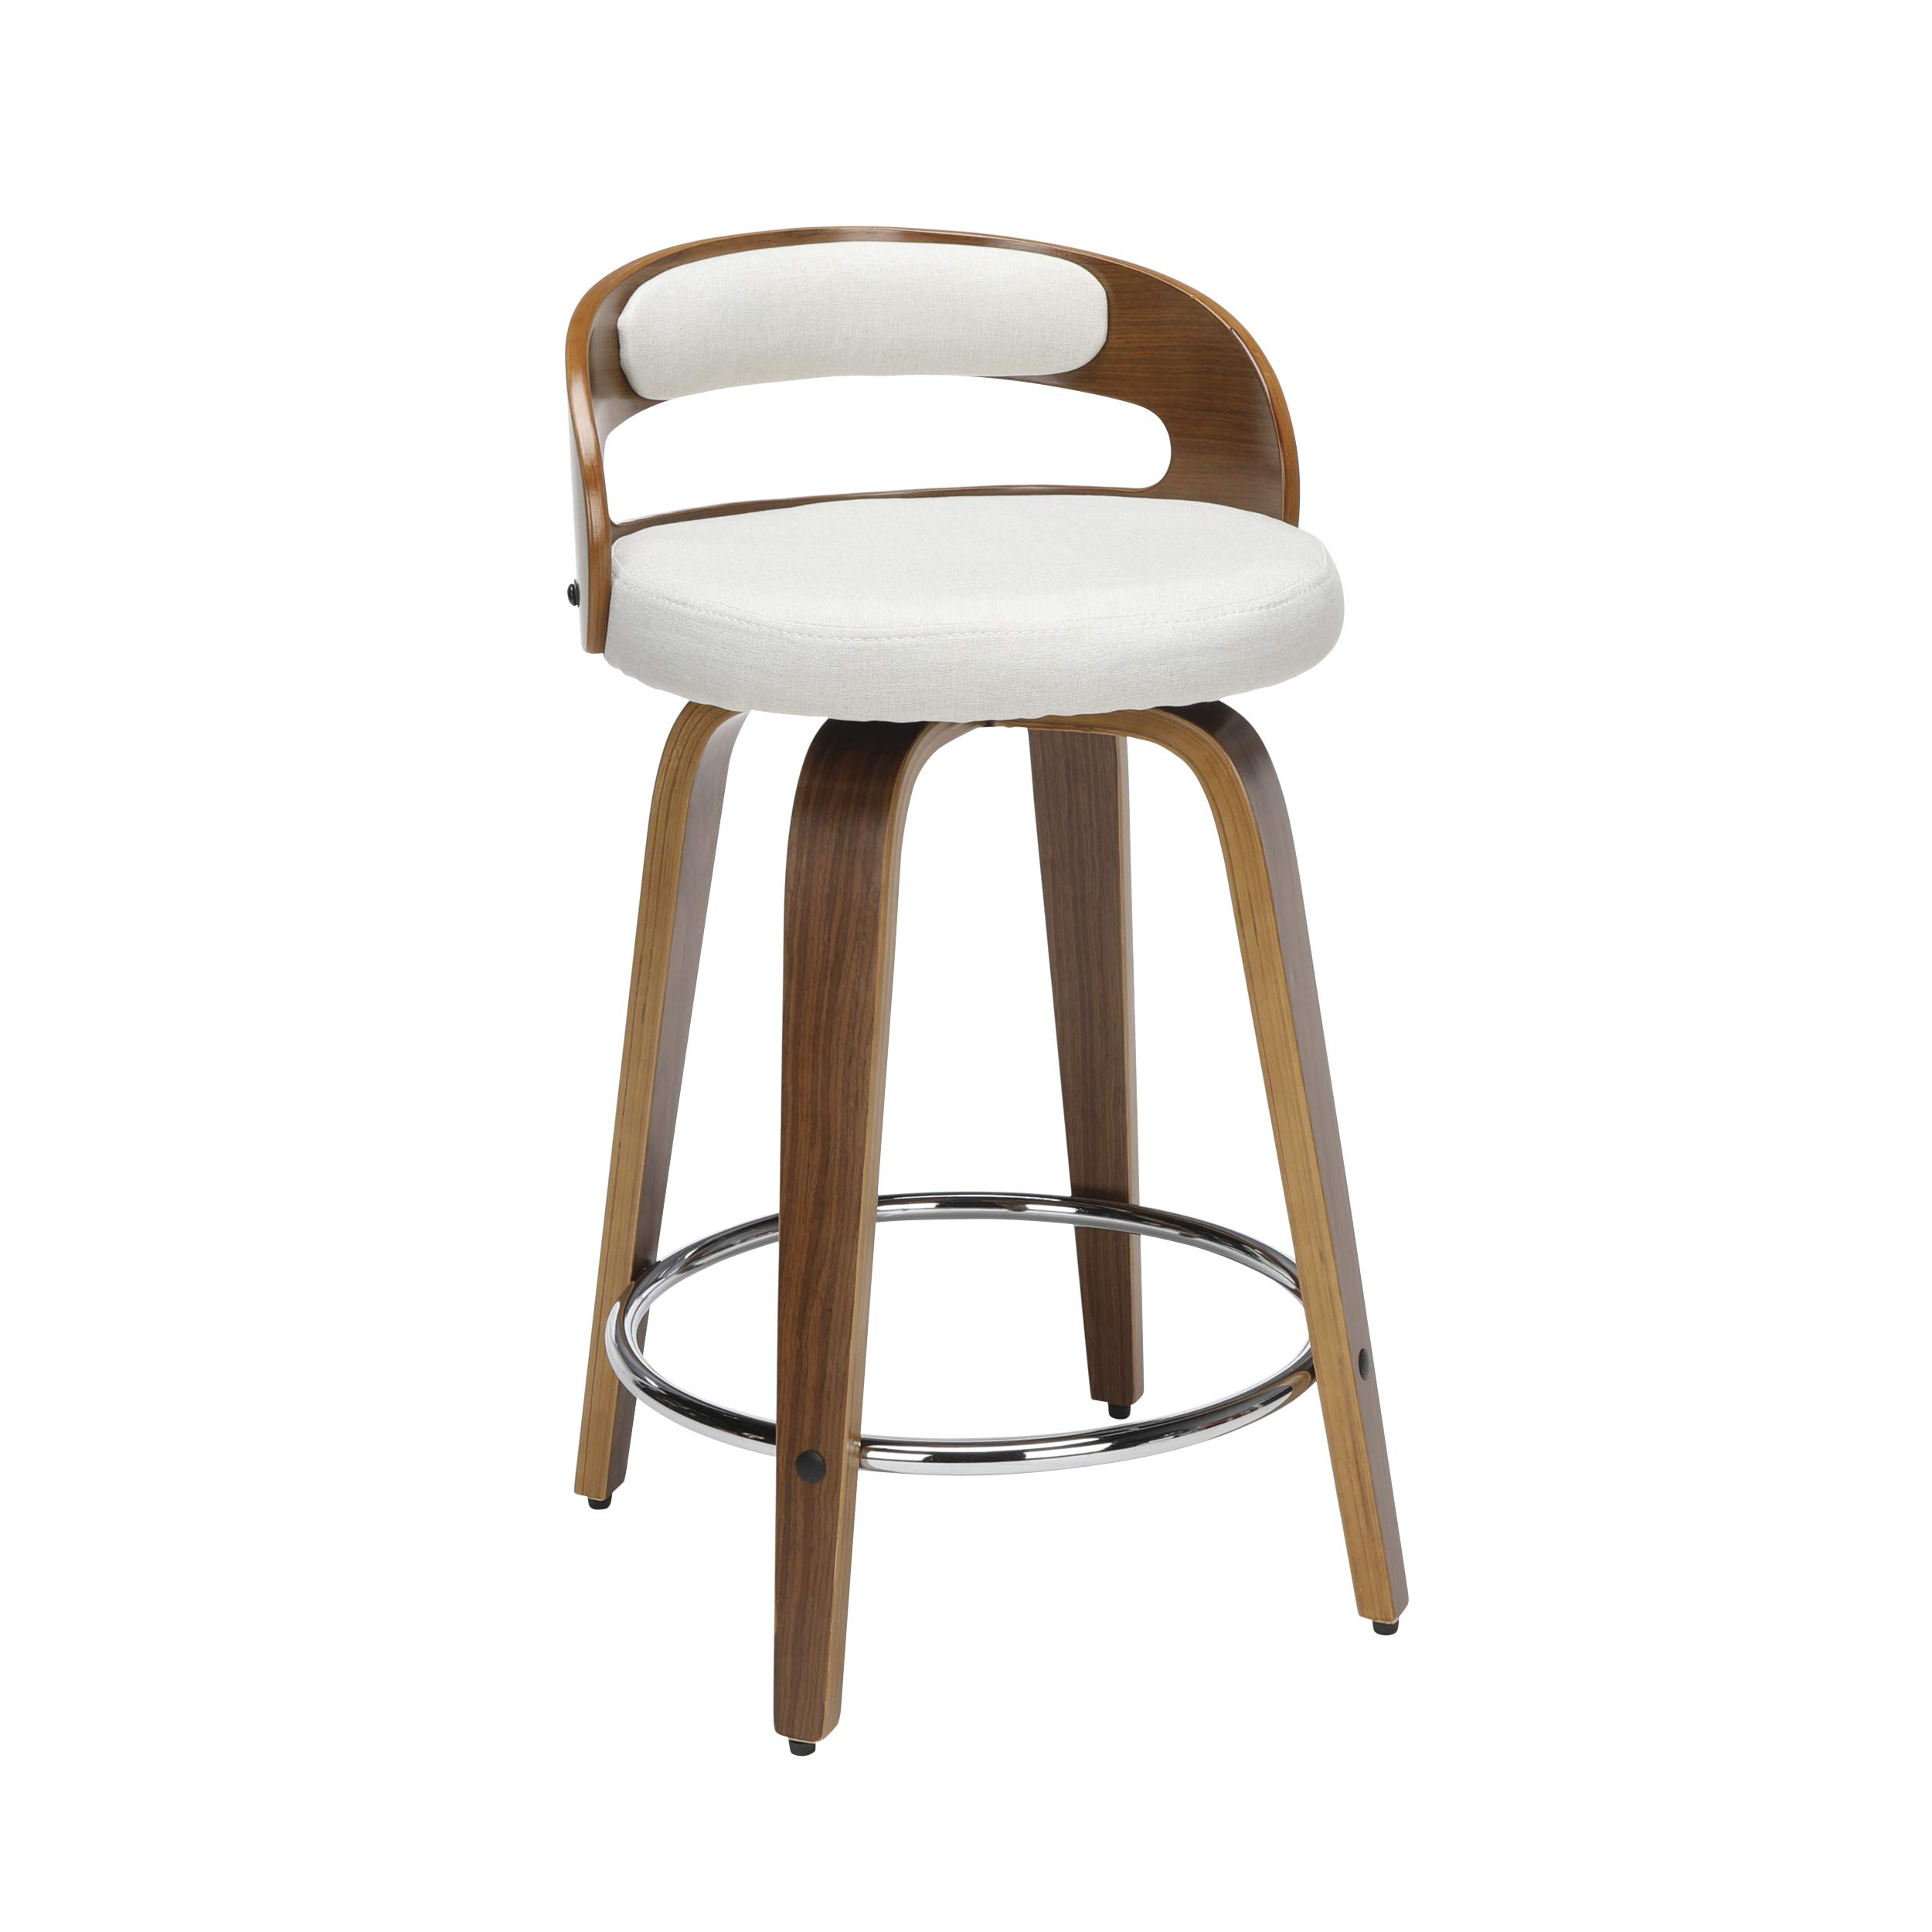 OFM 161 Collection Mid Century Modern 24'' Low Back Bentwood Frame Swivel Seat Stool with Fabric Back and Seat Cushion, in Walnut/Beige by OFM